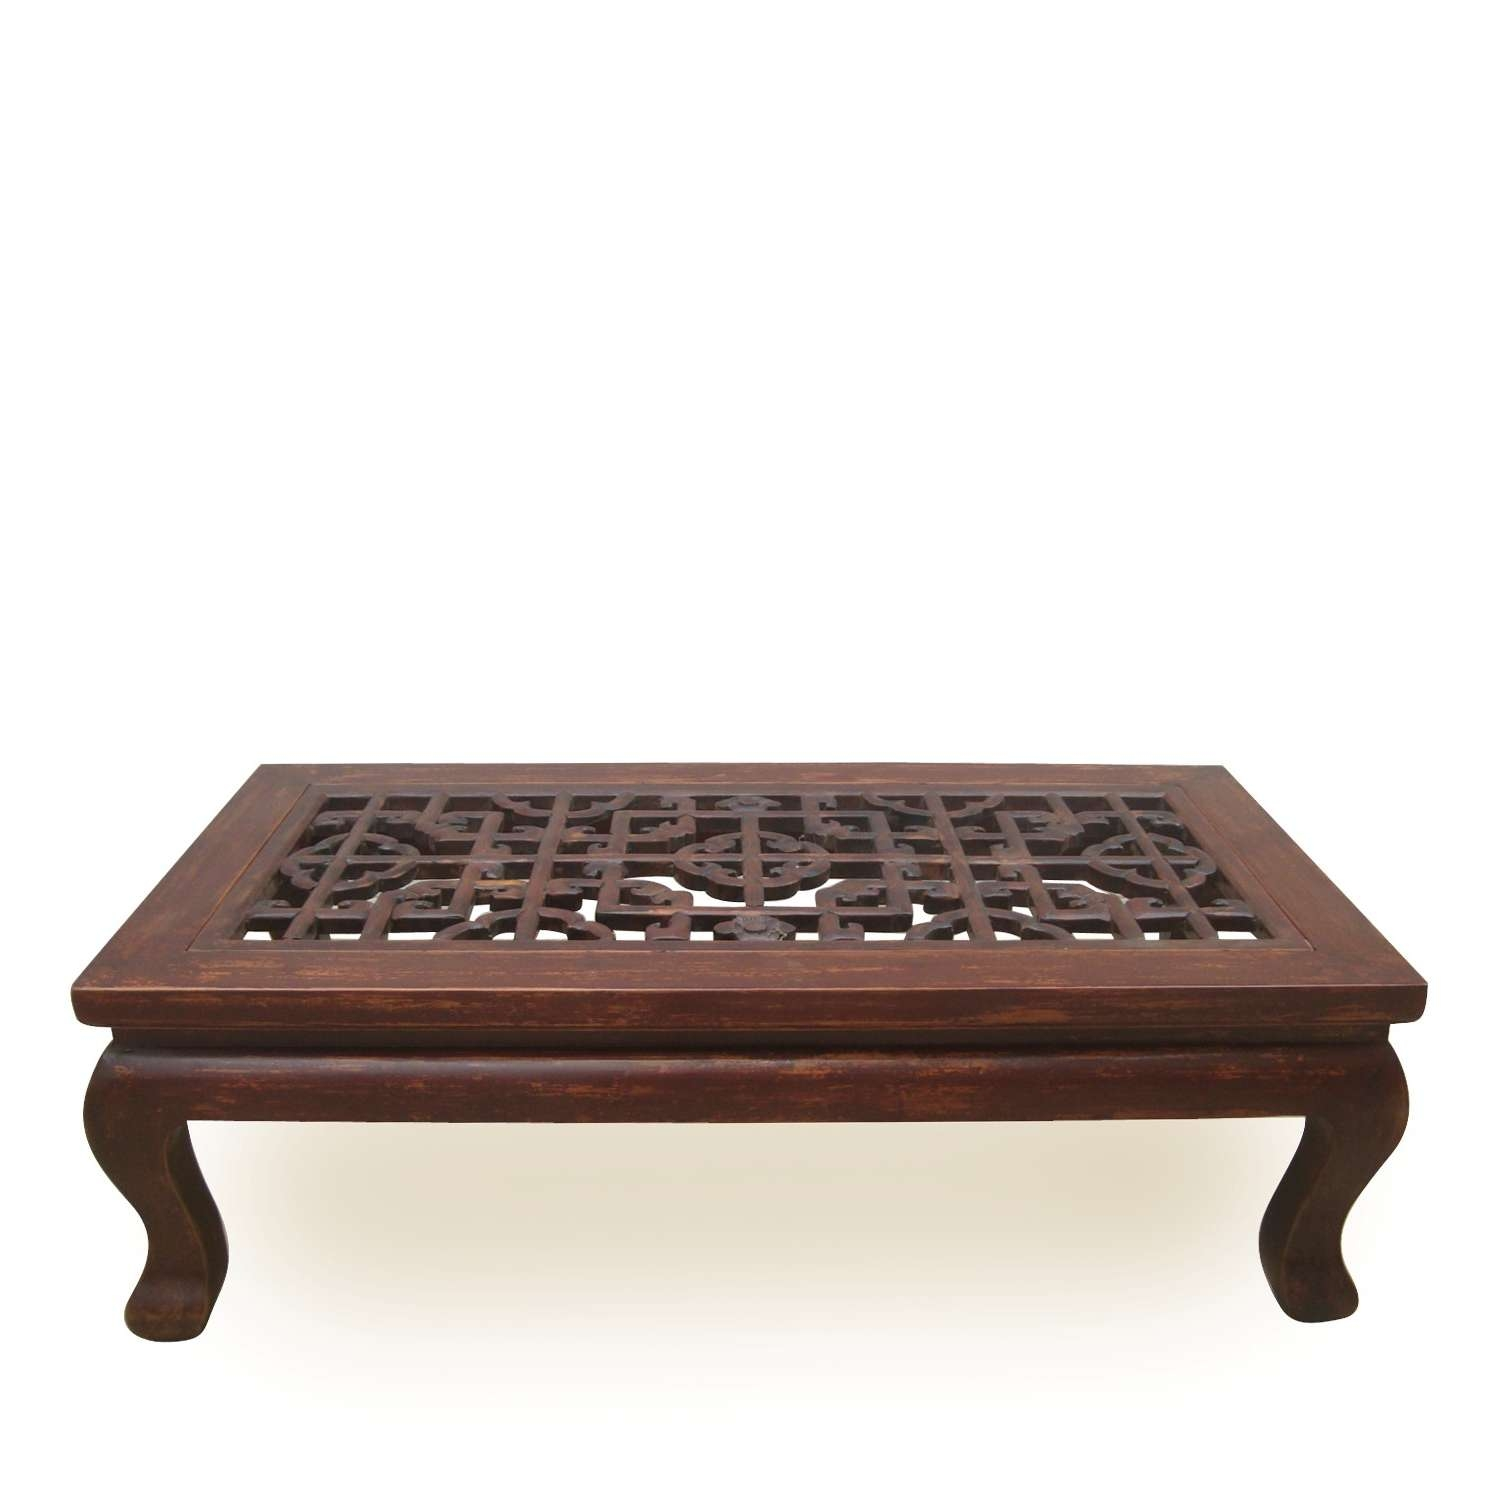 Furniture Chinese Coffee Table Design Ideas High Resolution For Favorite Chinese Coffee Tables (View 12 of 20)